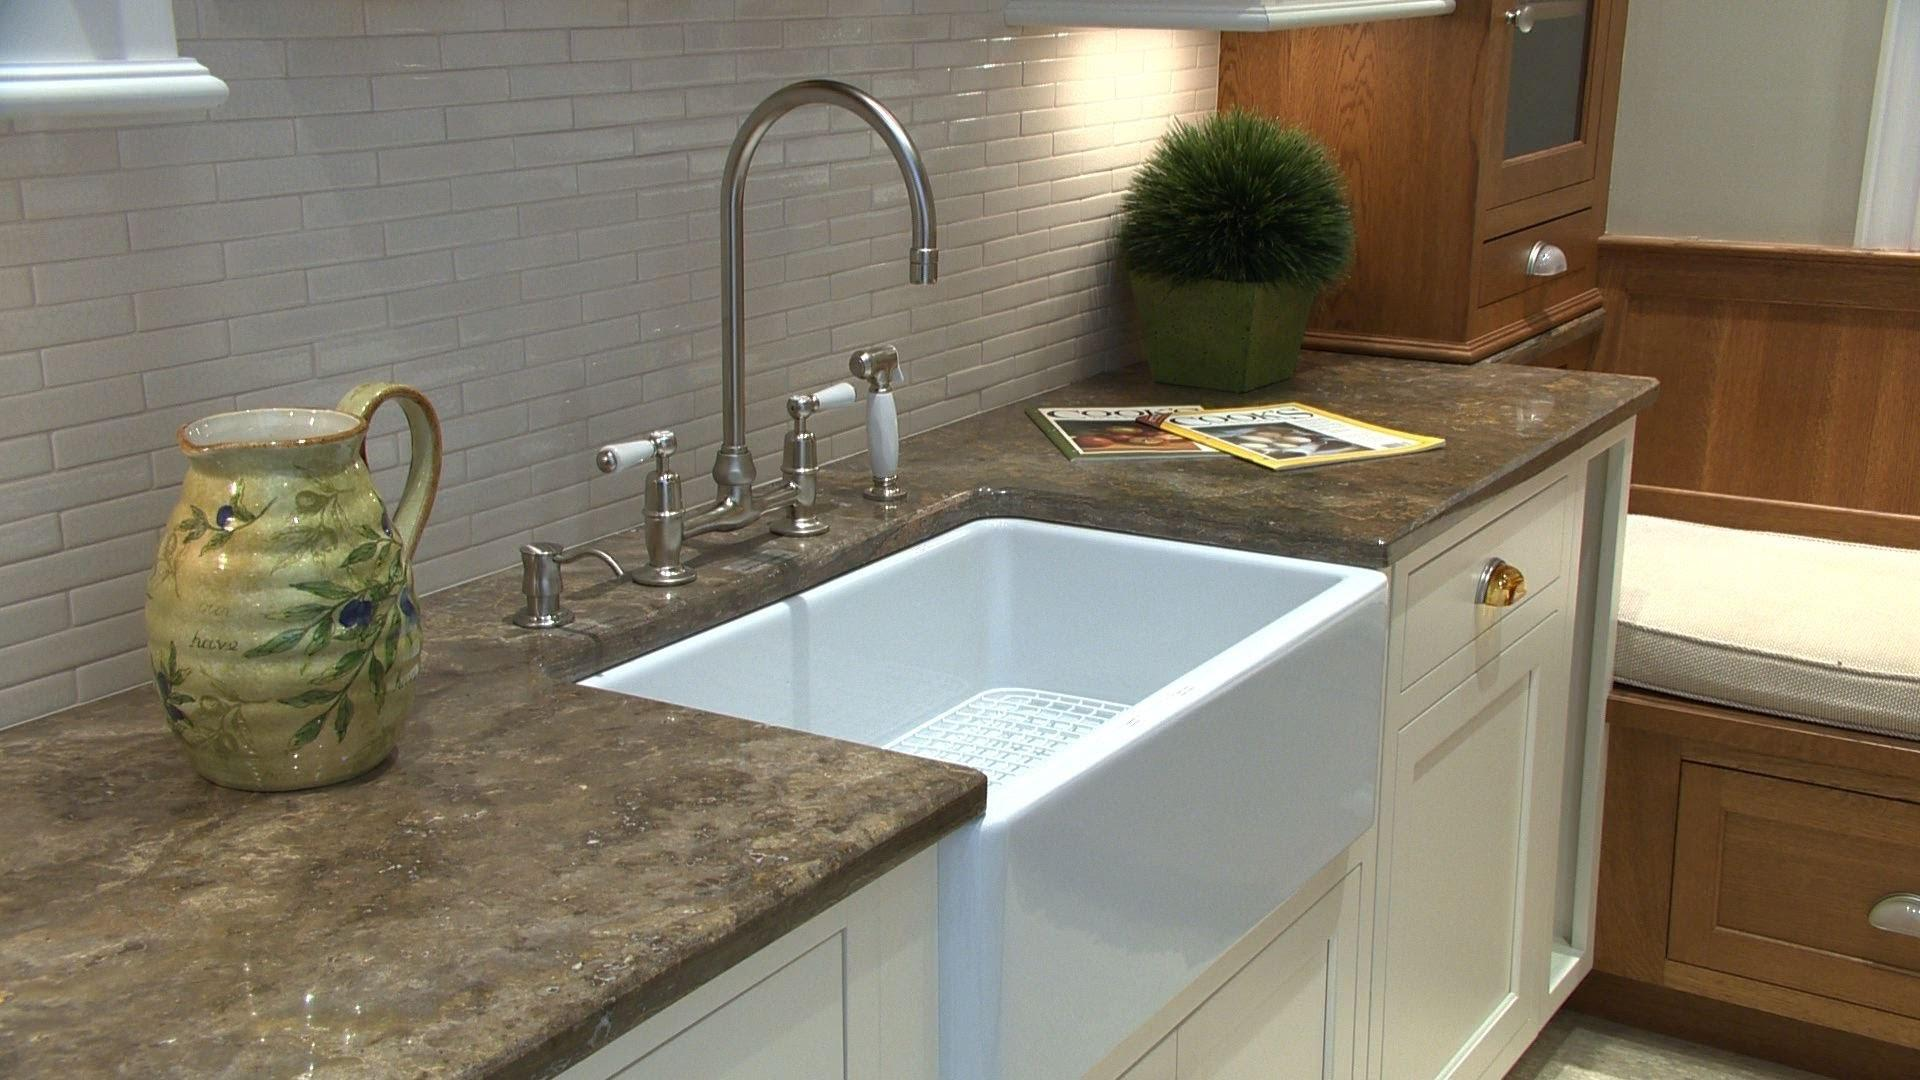 Buying New Kitchen Sink Advice Consumer Reports